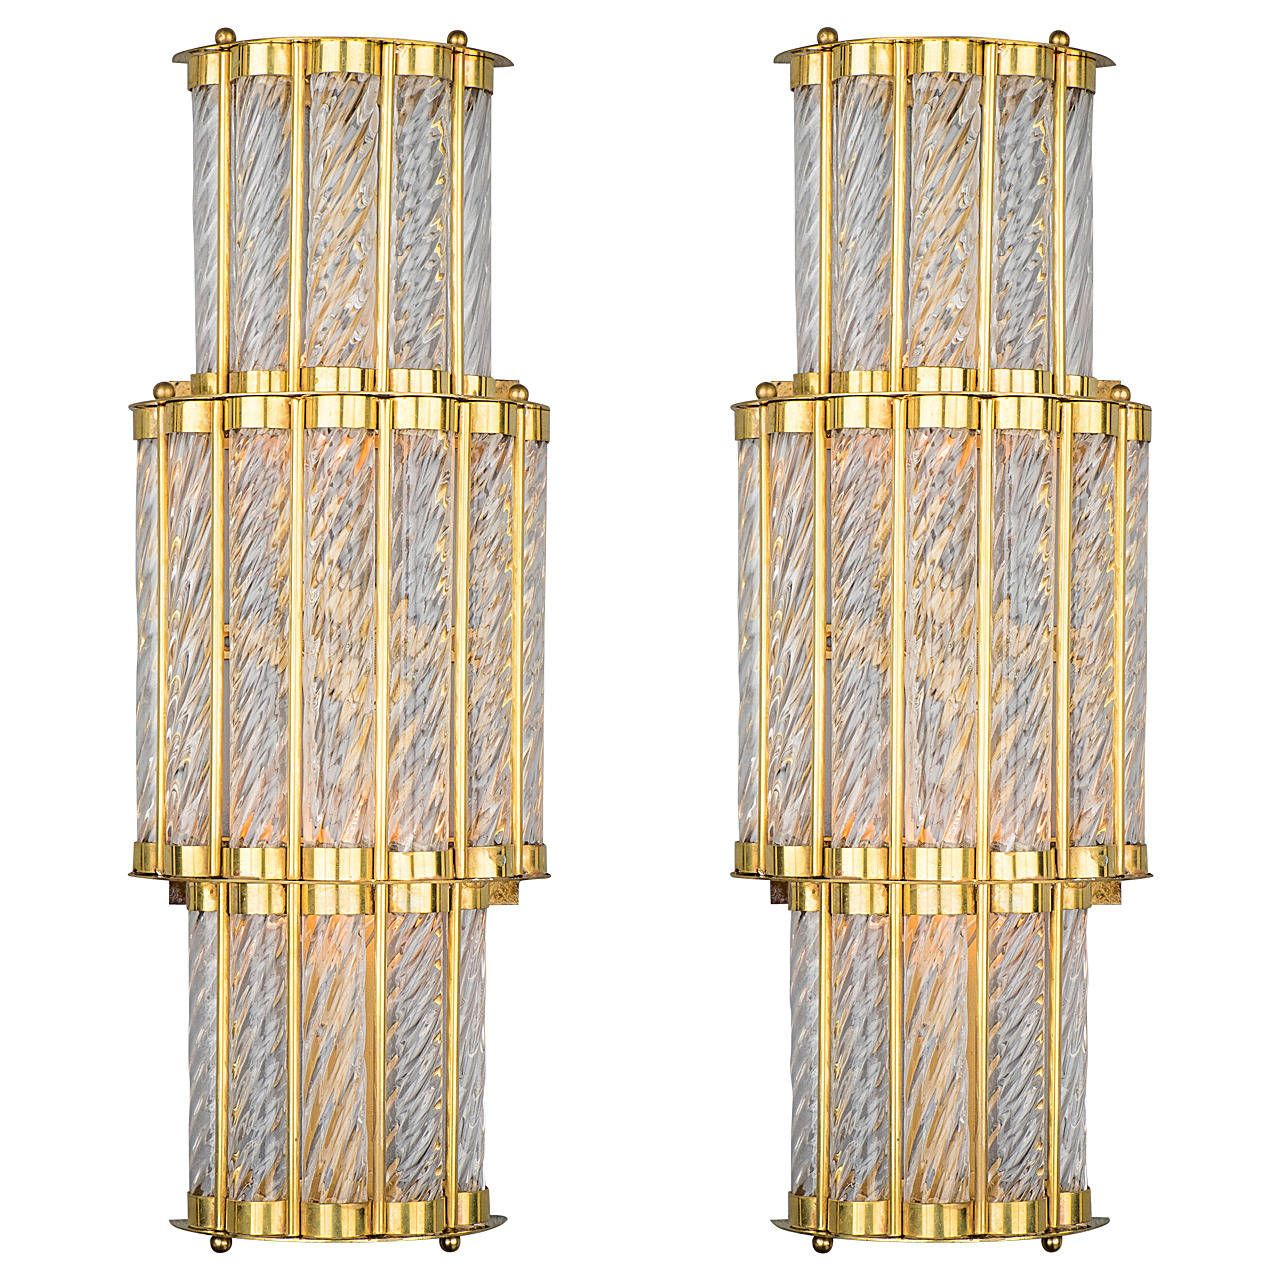 Art deco style murano wall sconces art deco style wall sconces art deco style murano wall sconces mozeypictures Images